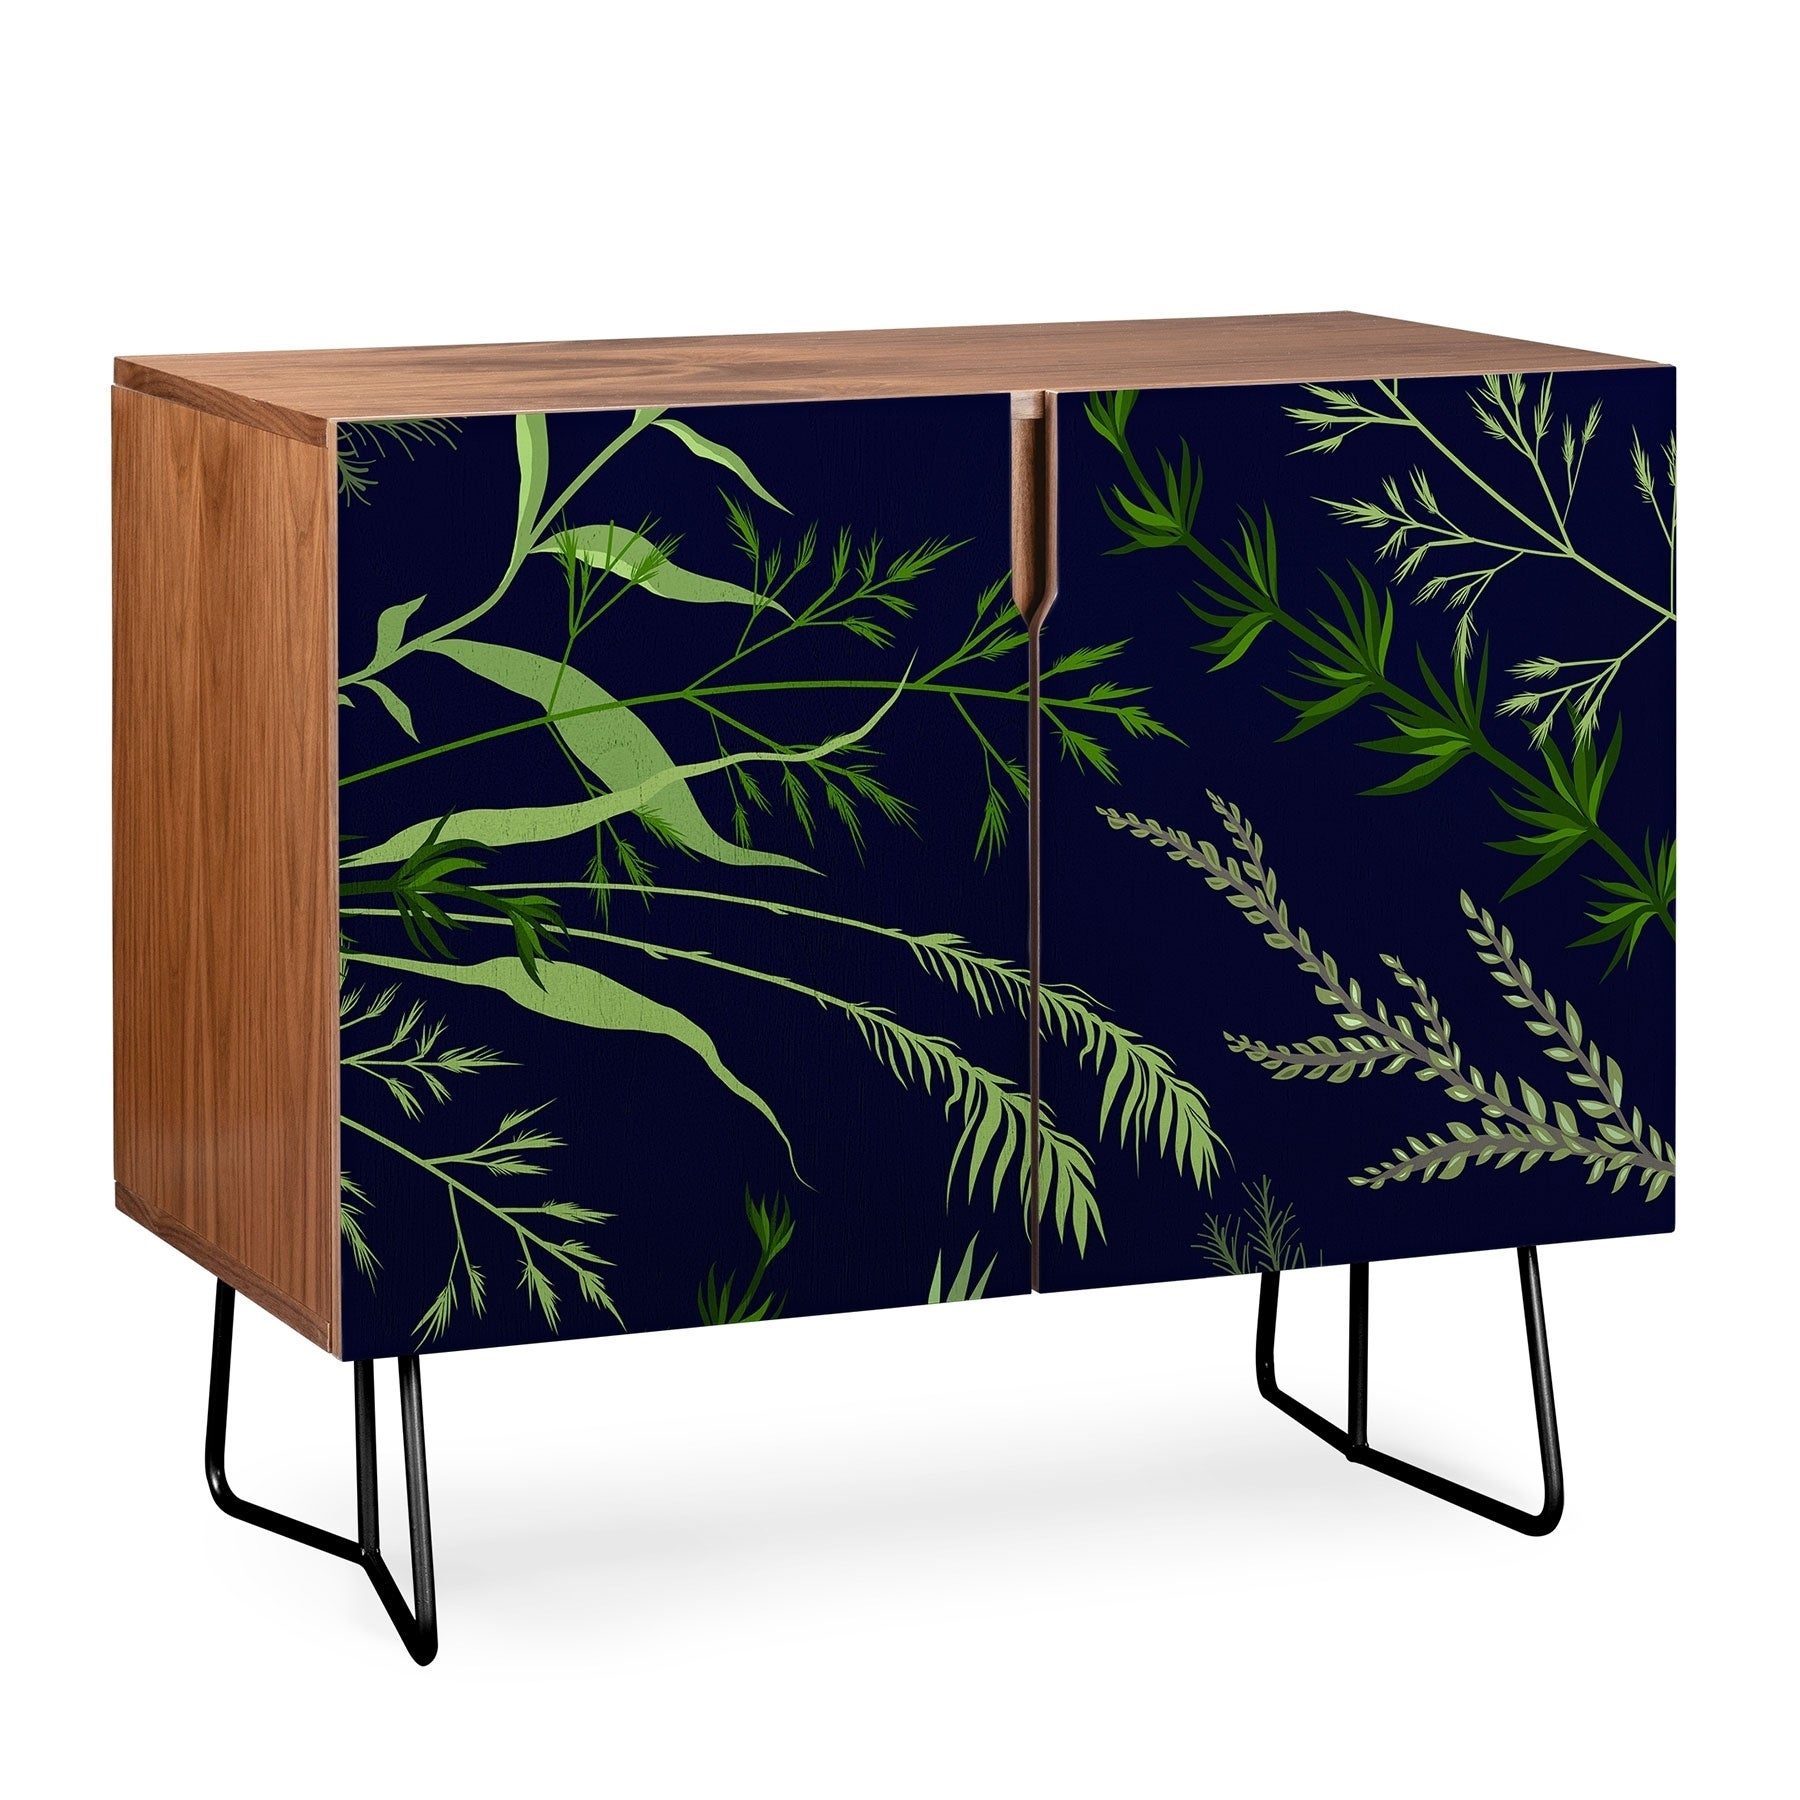 Deny Designs Deep Blue Fern Credenza (Birch Or Walnut, 2 Leg Options) Inside Deep Blue Fern Credenzas (View 7 of 30)